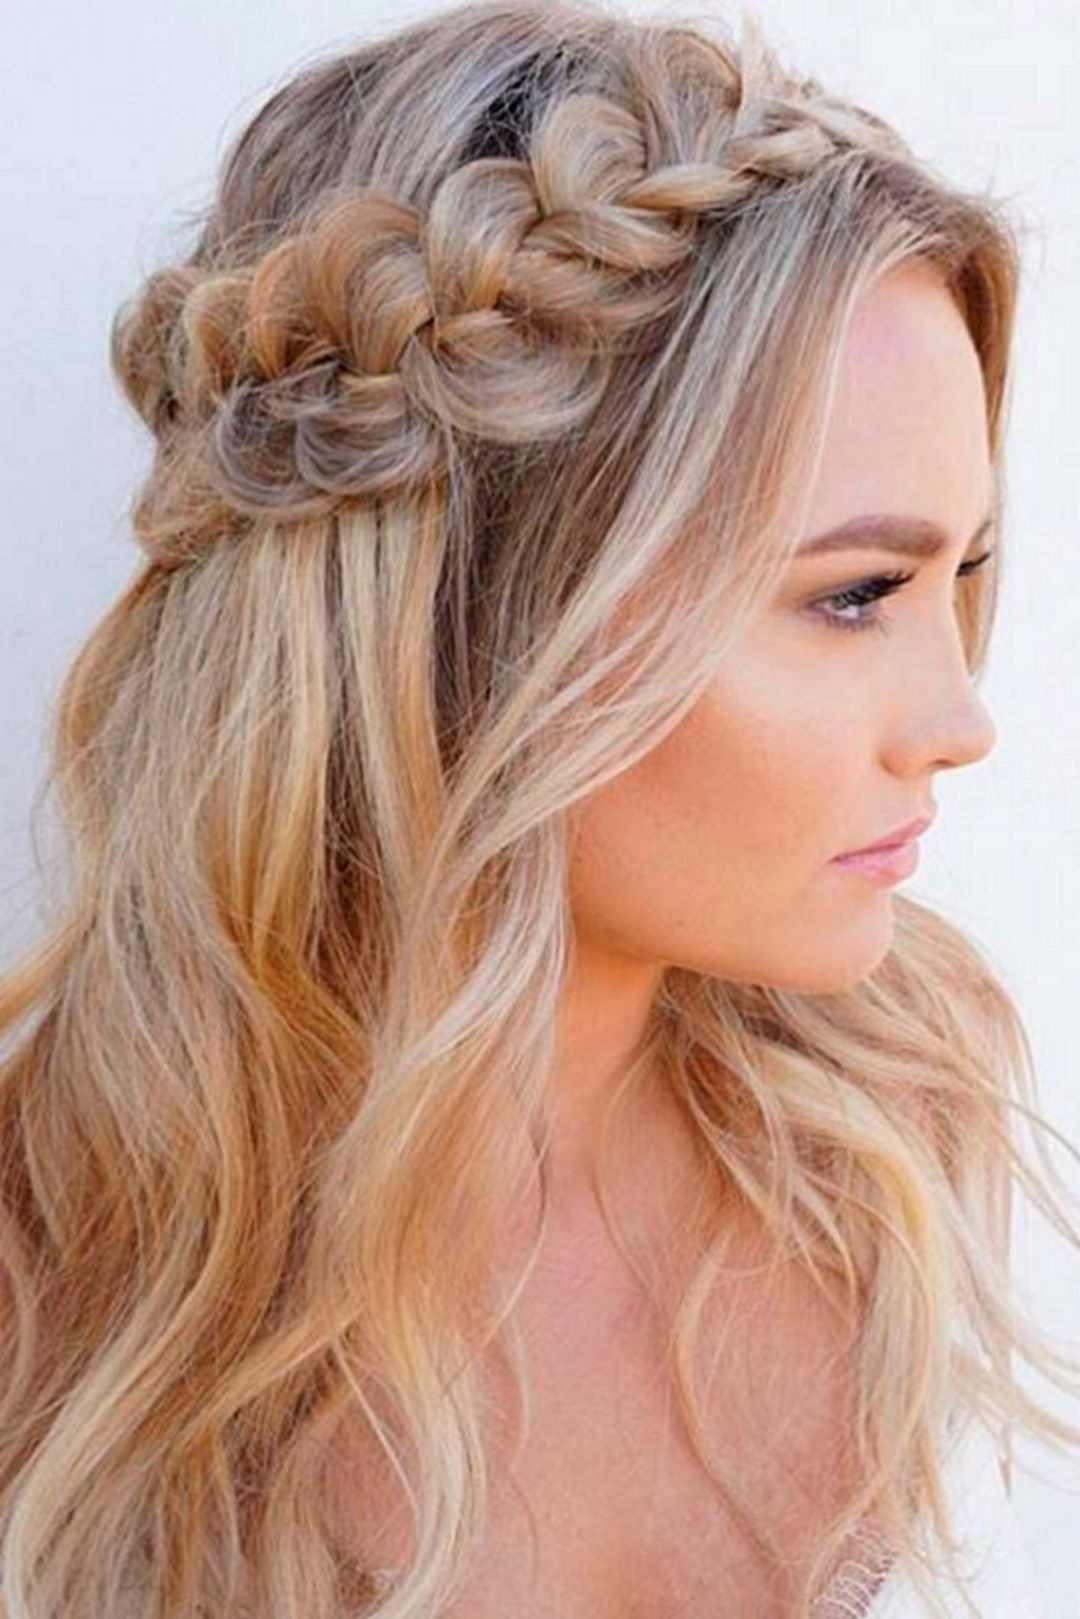 30+ Beautiful Semi-Formal Women Hairstyle Ideas For Party | Medium hair styles, Down hairstyles ...